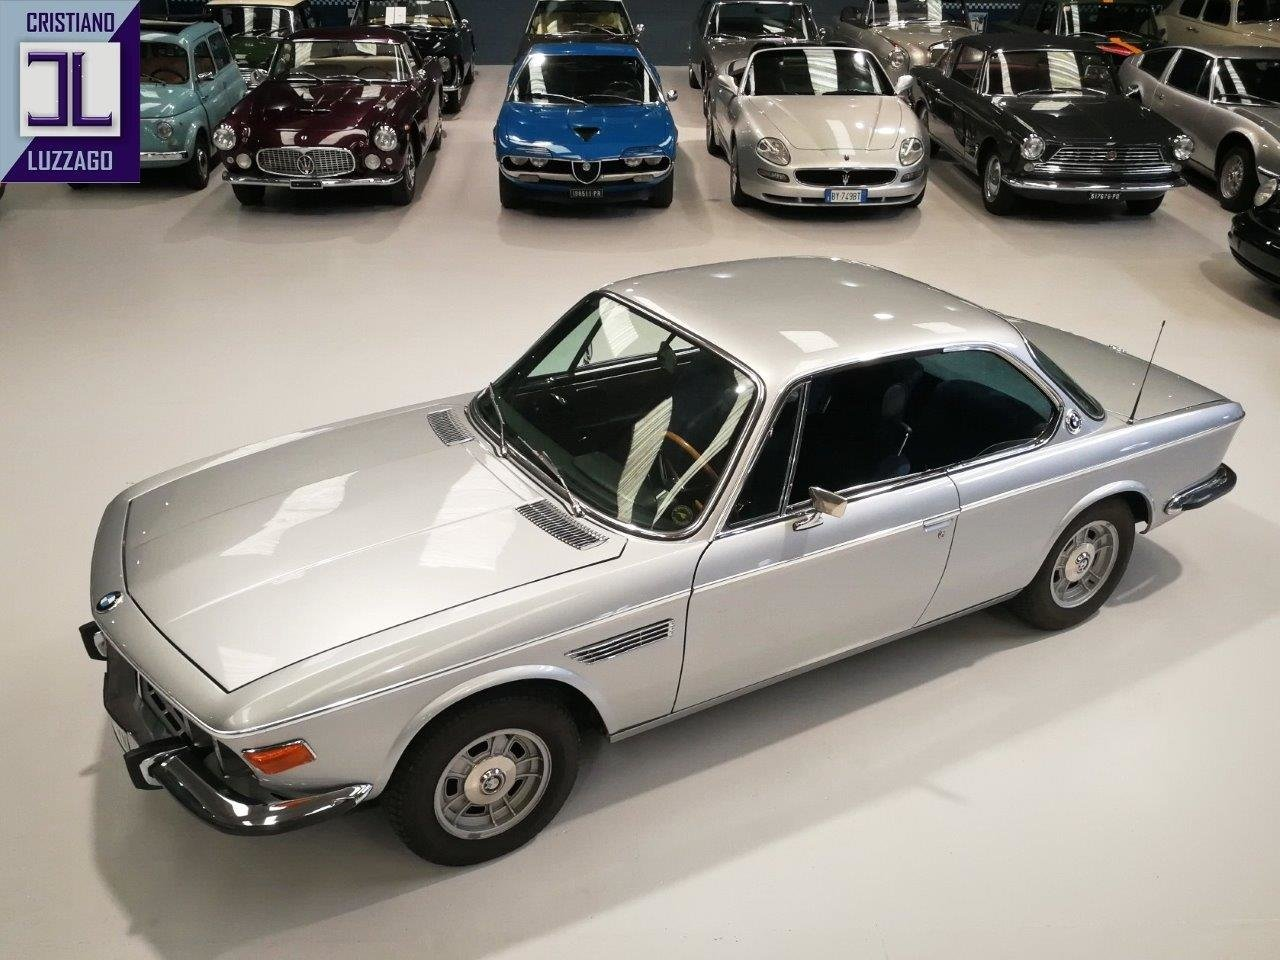 1971 BMW E9 2800 CS For Sale (picture 1 of 6)